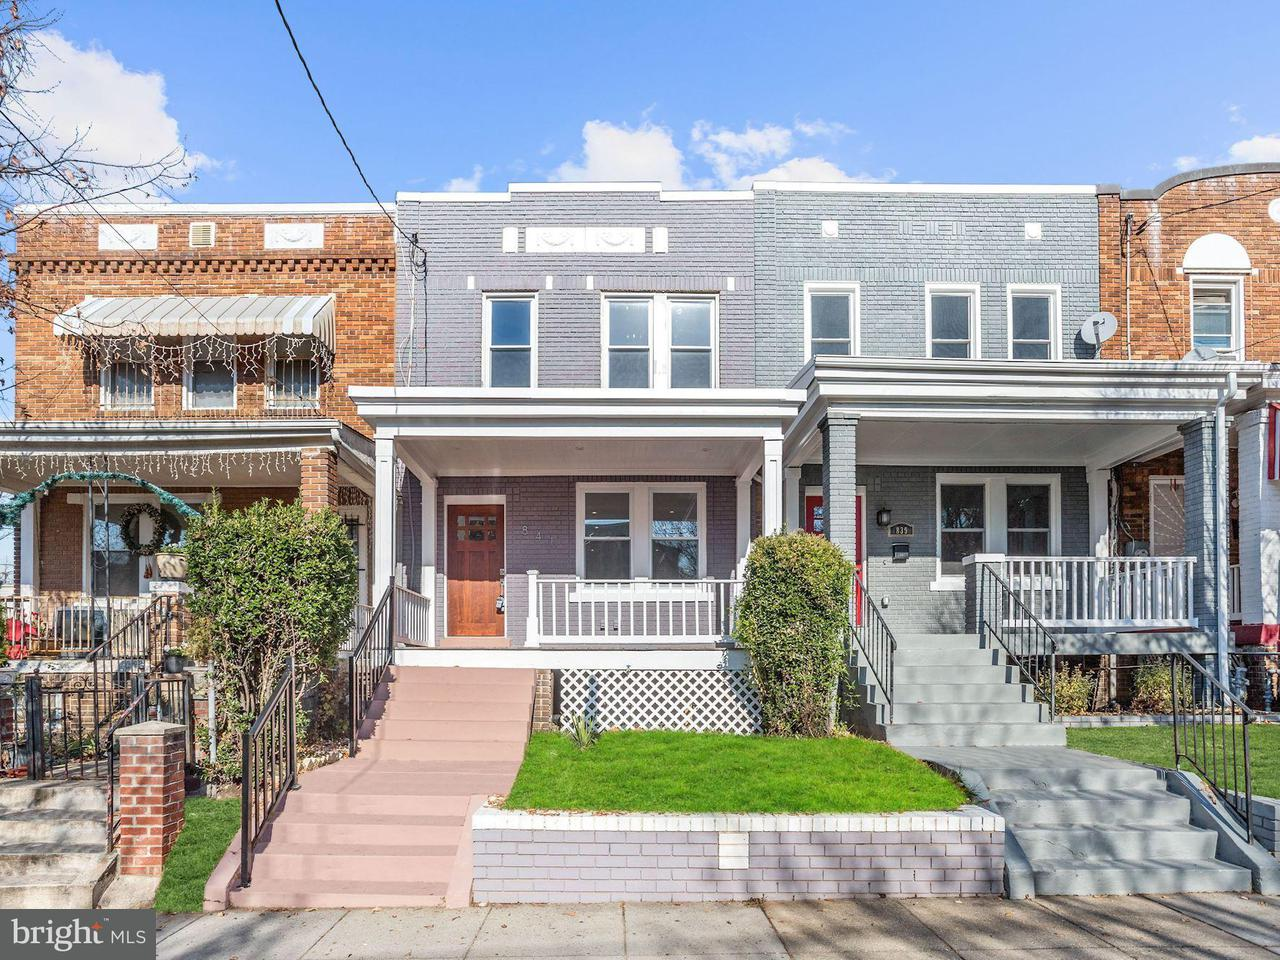 Townhouse for Sale at 841 Decatur St Nw 841 Decatur St Nw Washington, District Of Columbia 20011 United States